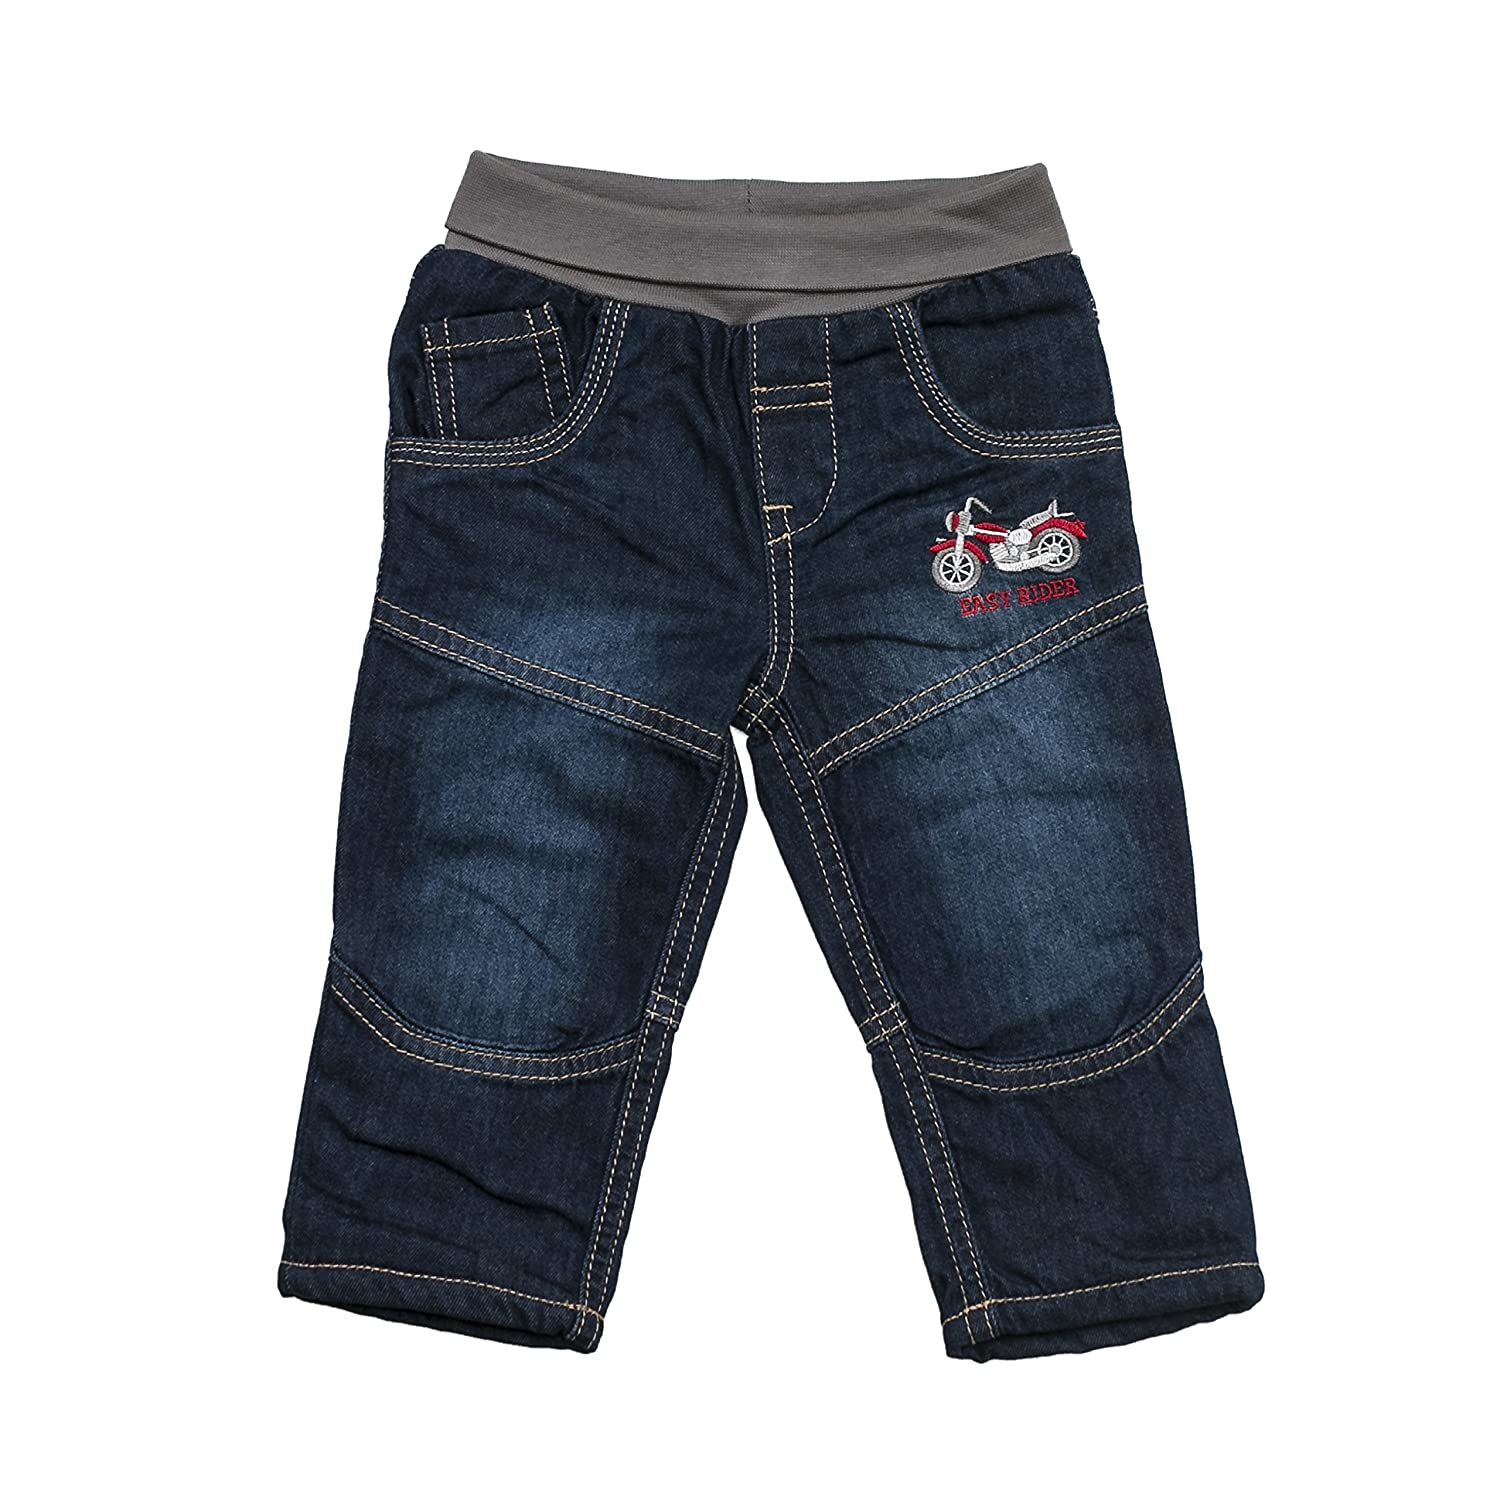 SALT AND PEPPER Baby-Jungen Jeanshose B Jeans Keep Moving Bike Blau (original 099) 68 65220136